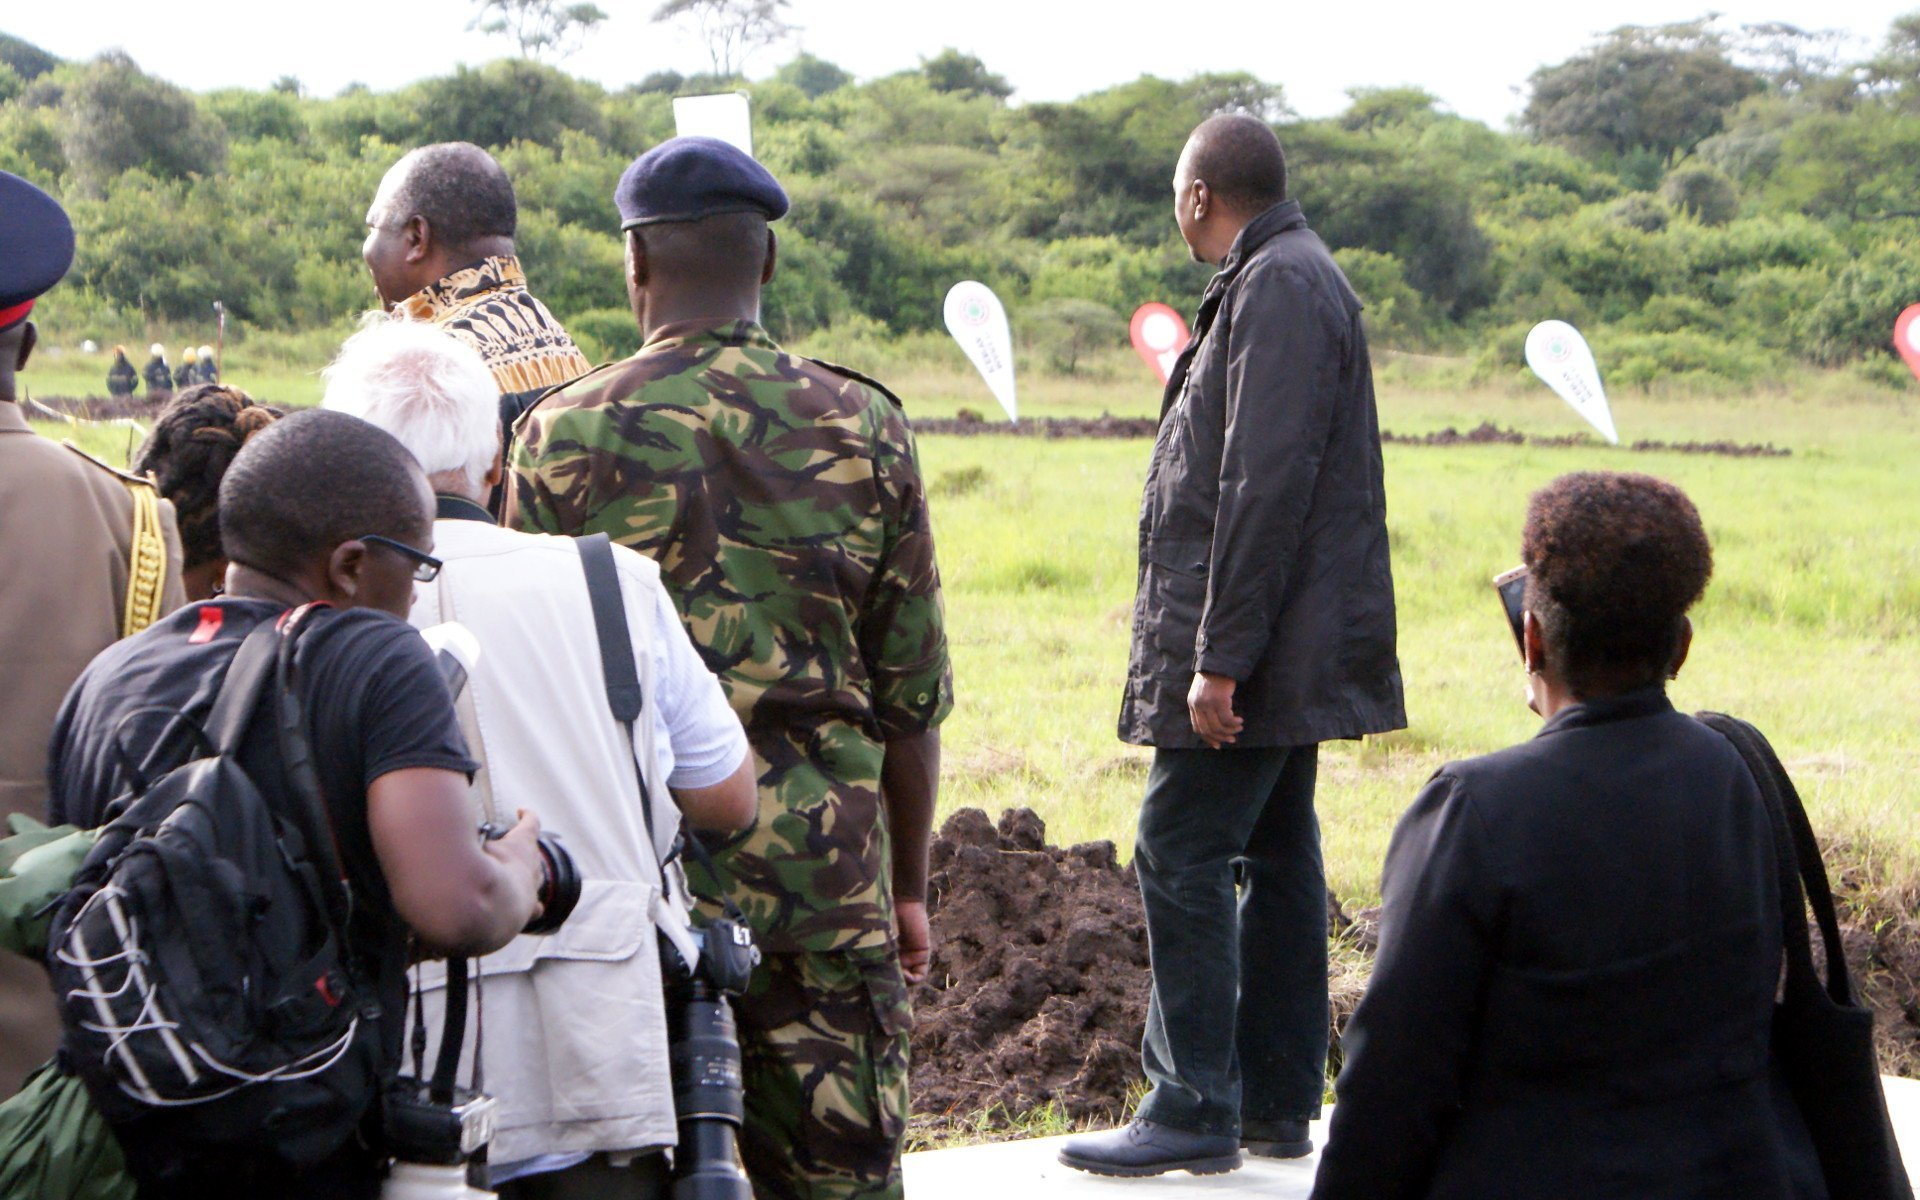 President Uhuru looks on as the ivory burns. He and President Ali Bongo of Gabon had just delivered their speeches.